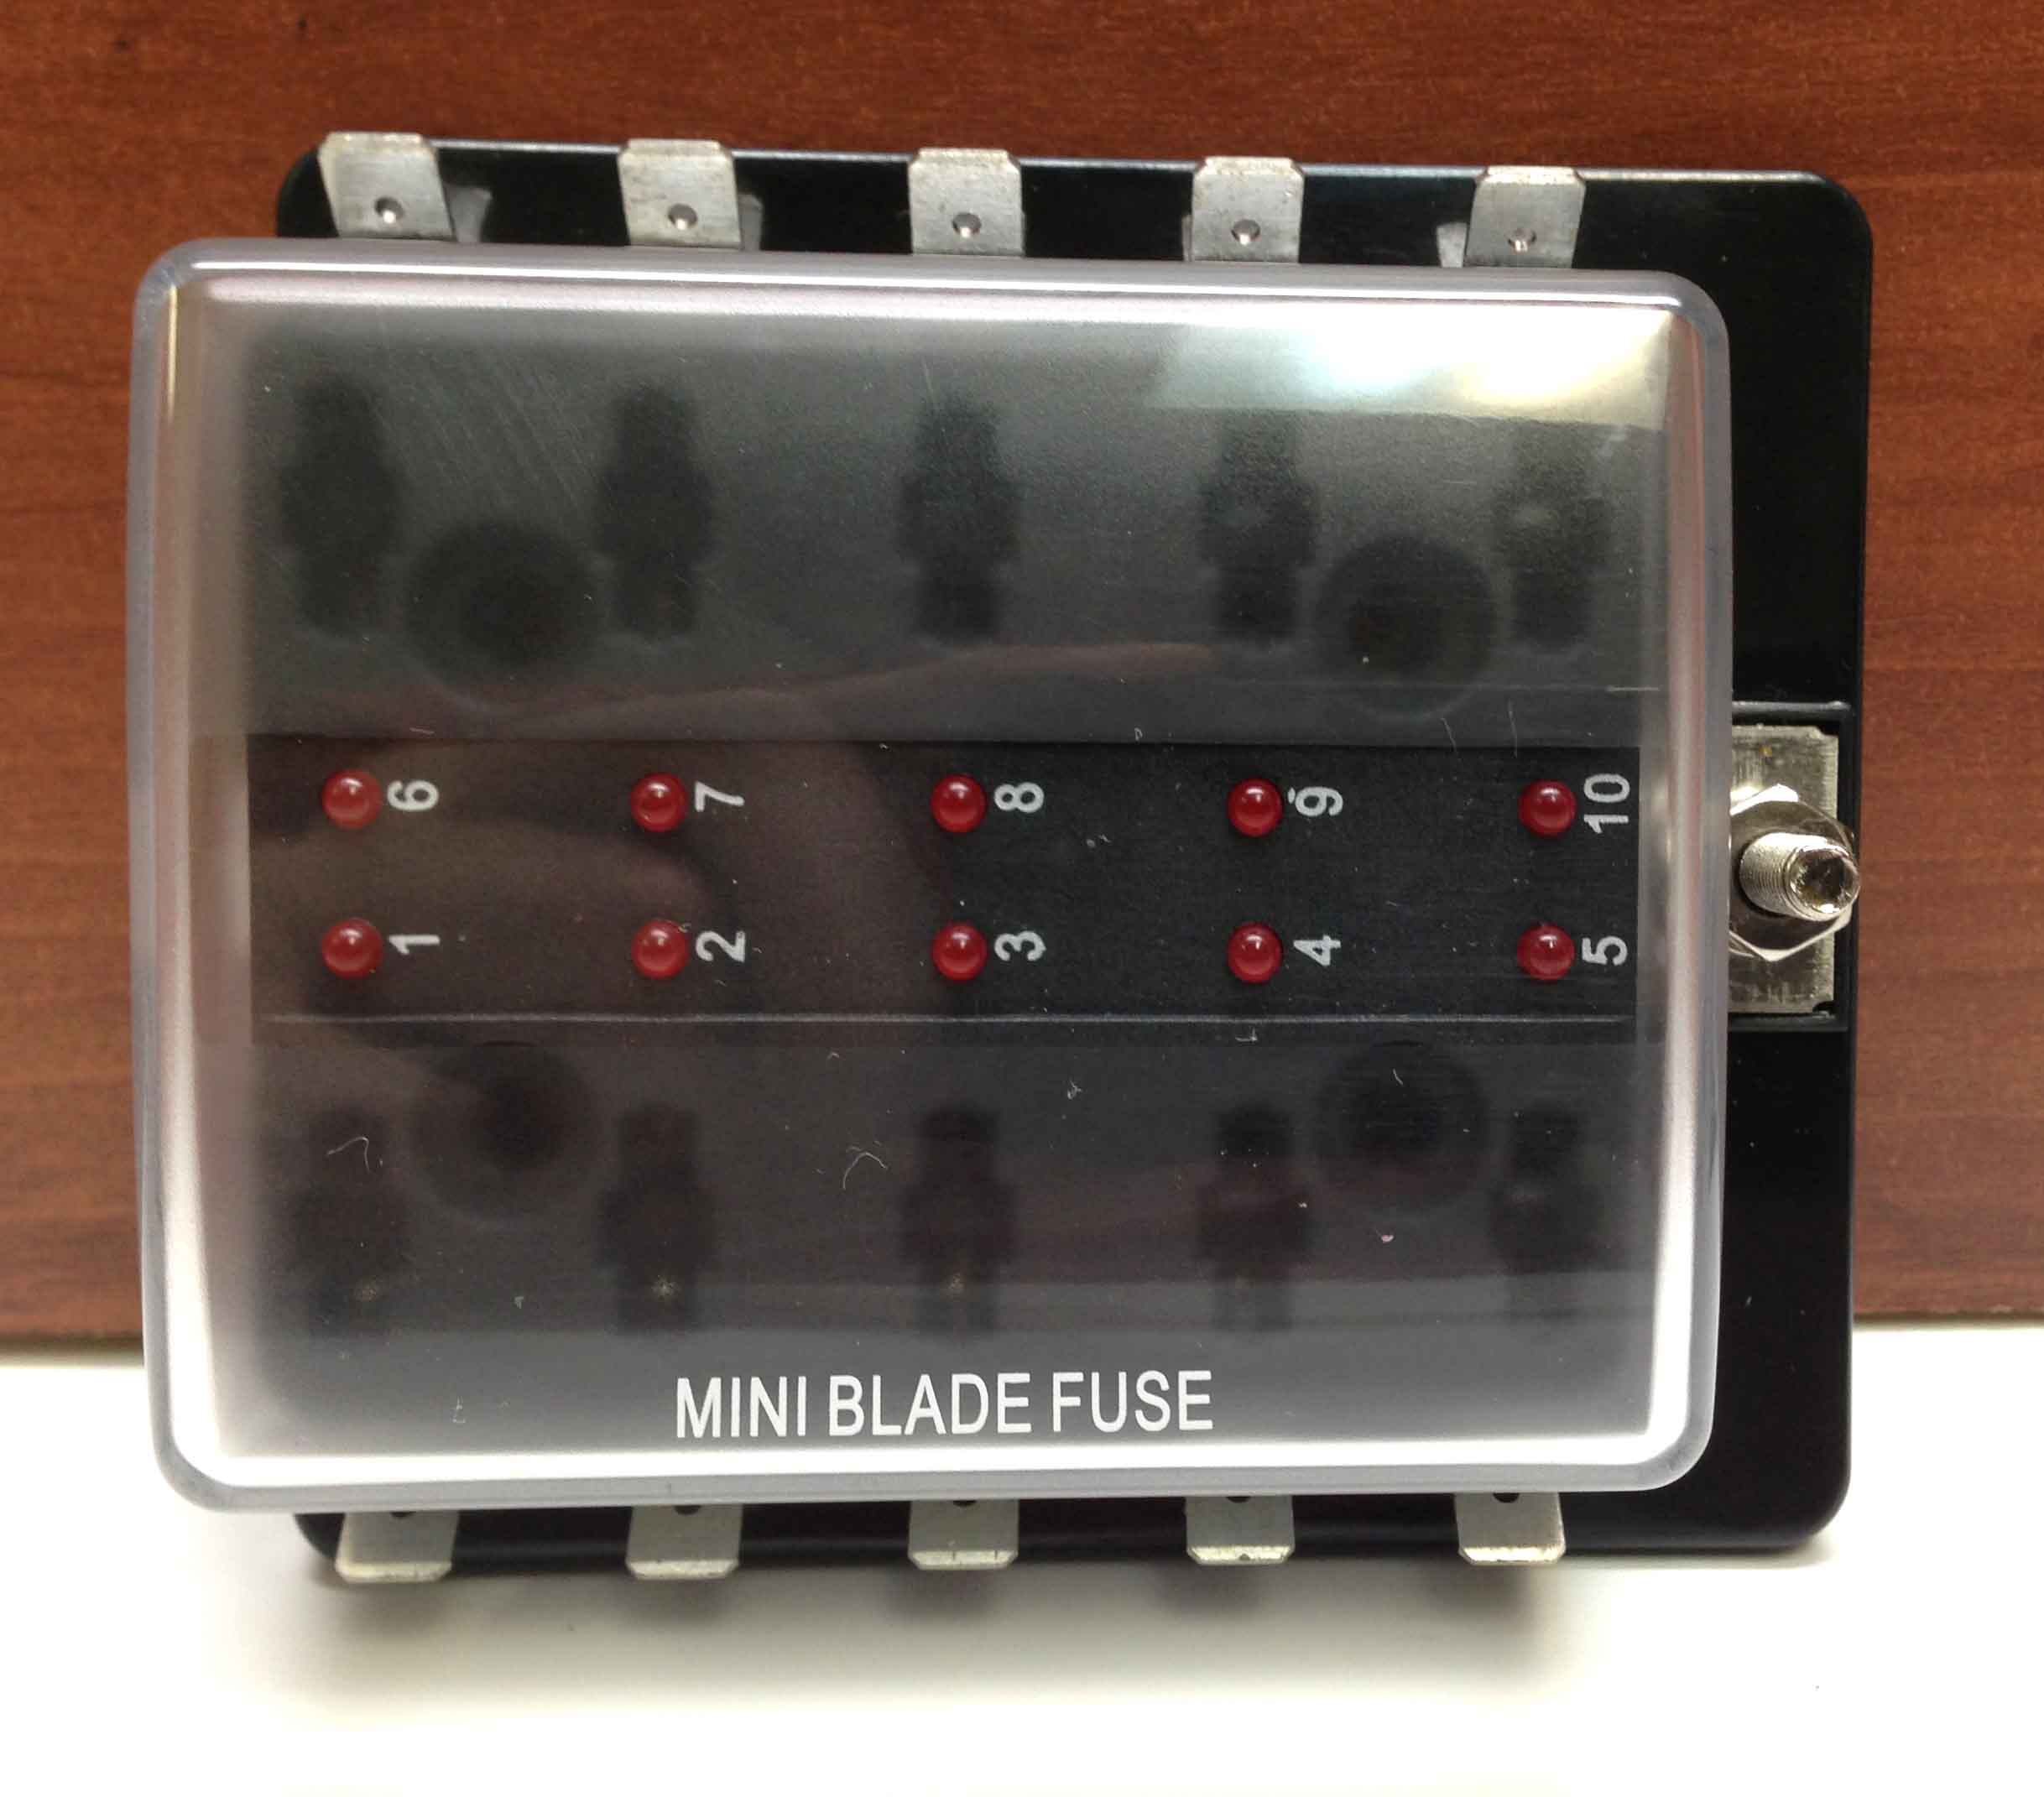 P11513 10 1 mini blade fuse block holder led indicator marine boat 10 gang us mini blade fuse block at soozxer.org